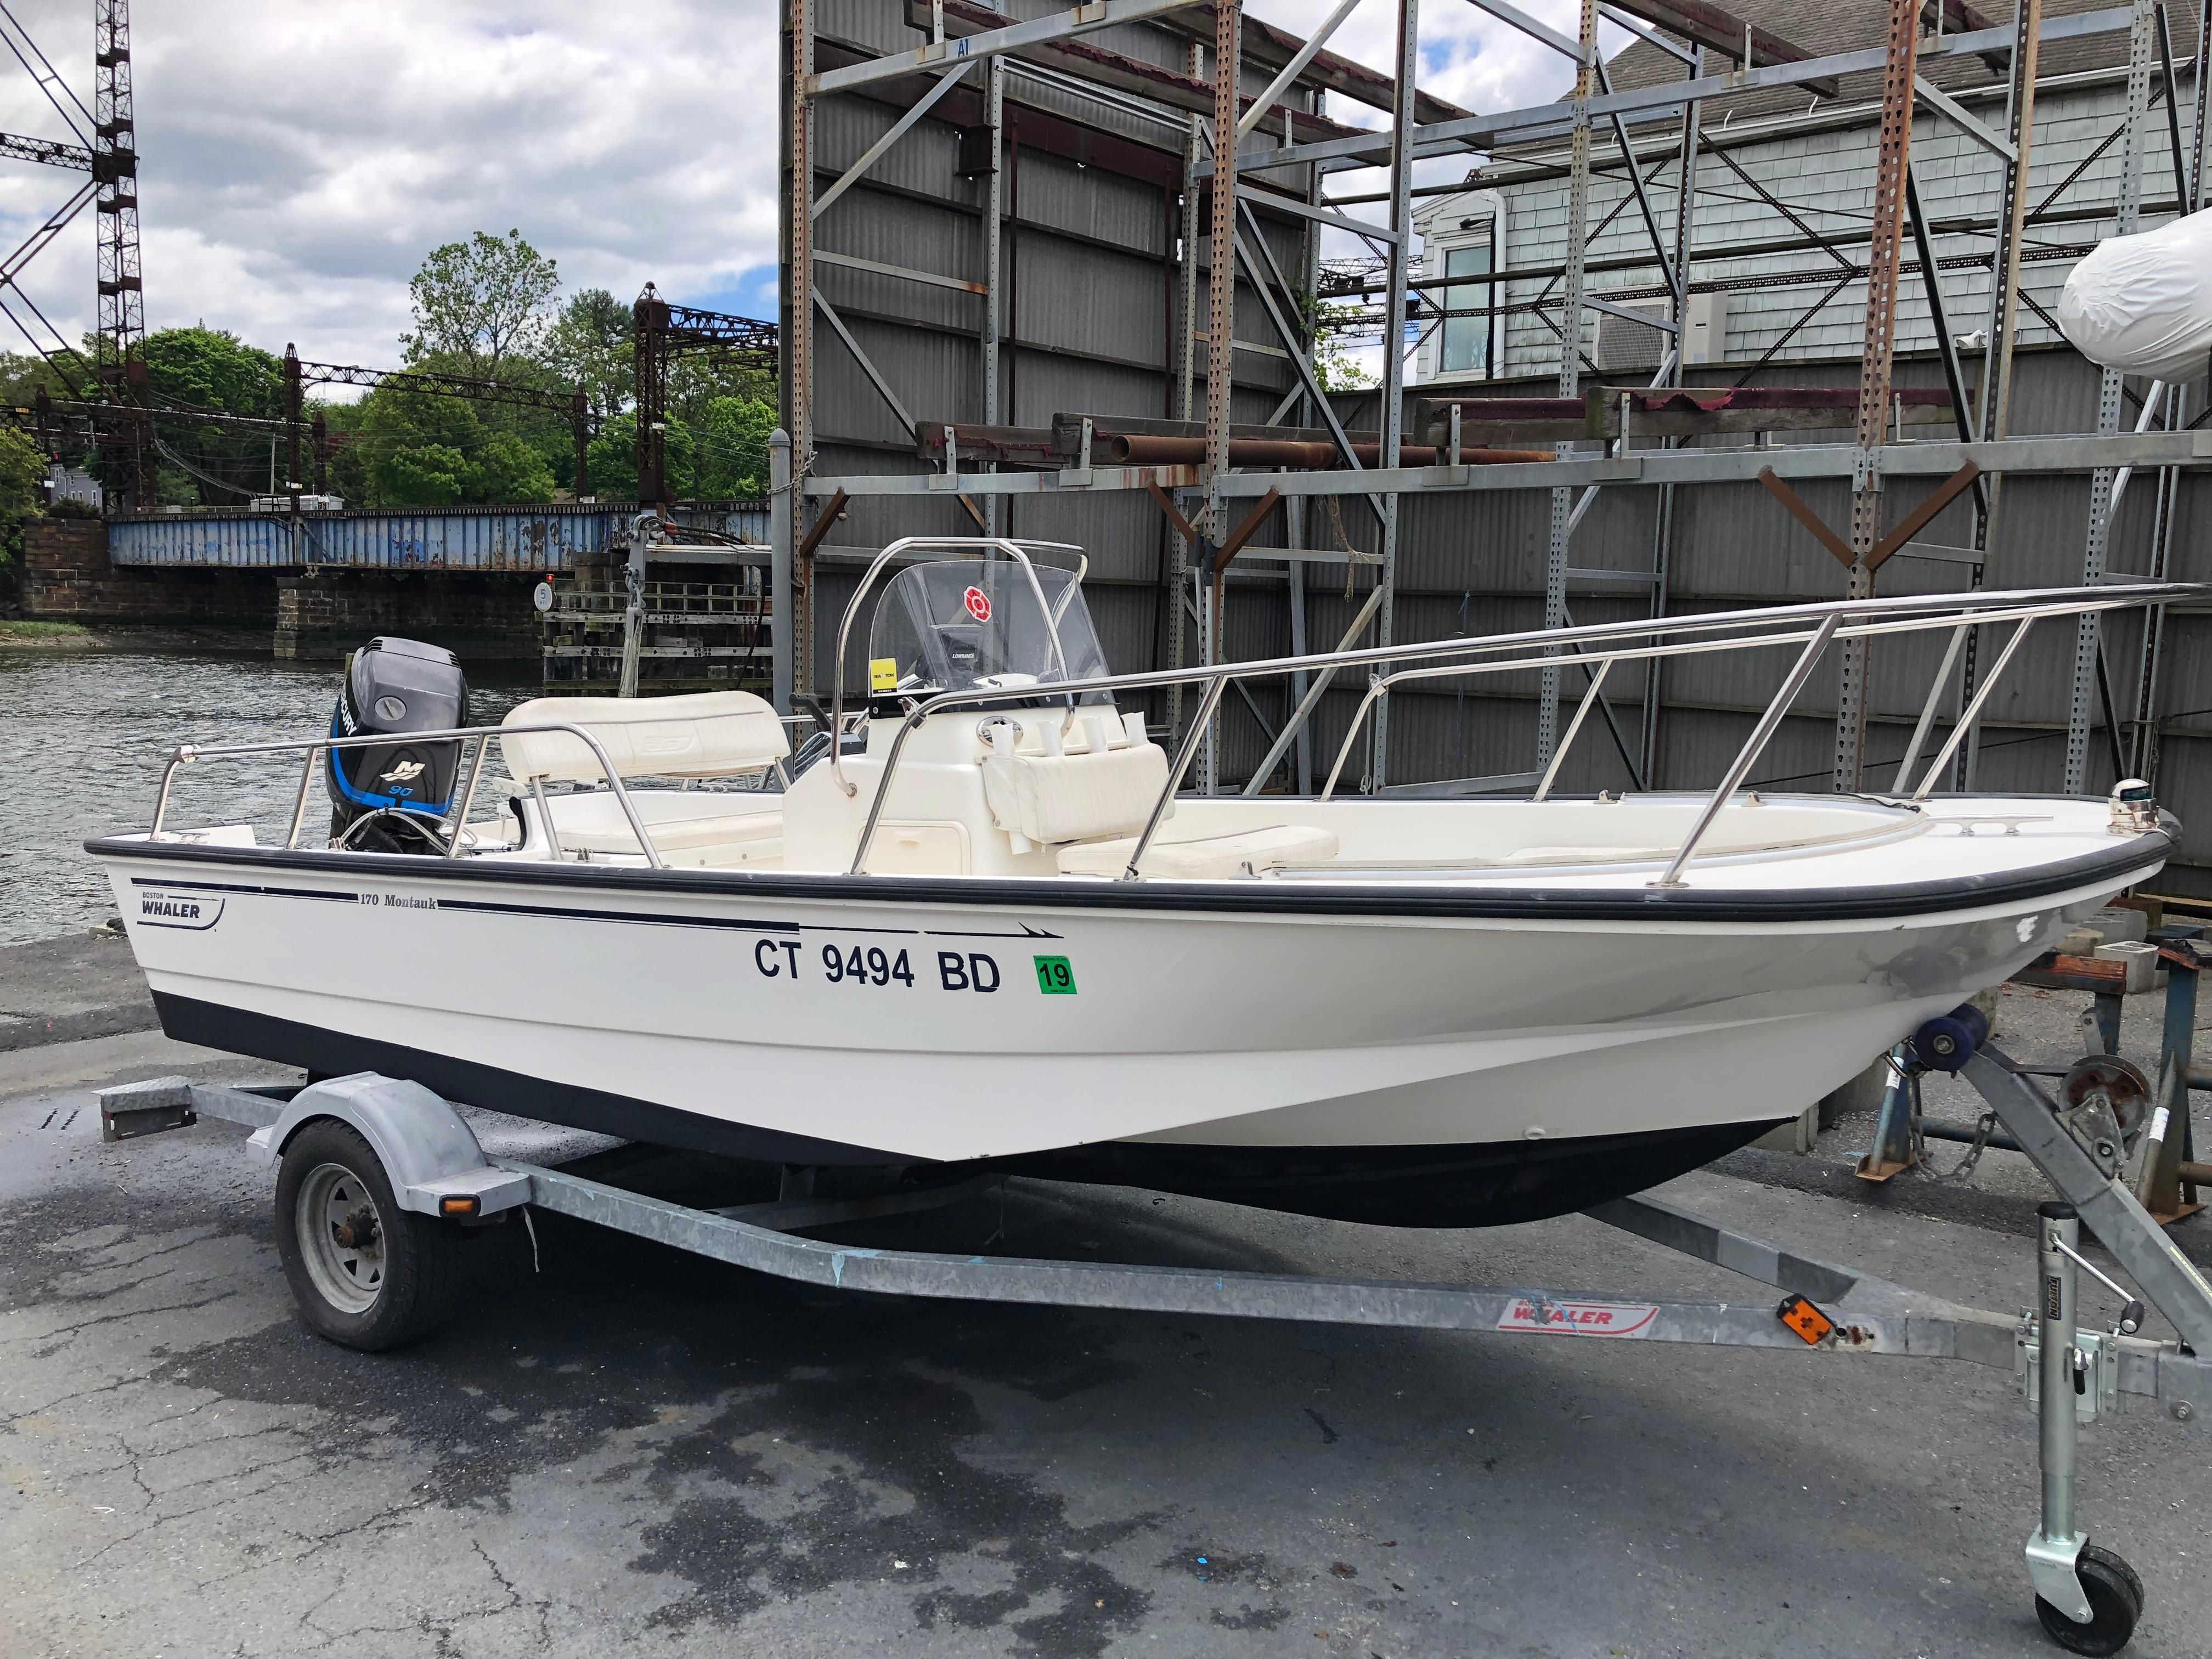 Used Boston Whaler Power Boats For Sale - All Seasons Marine